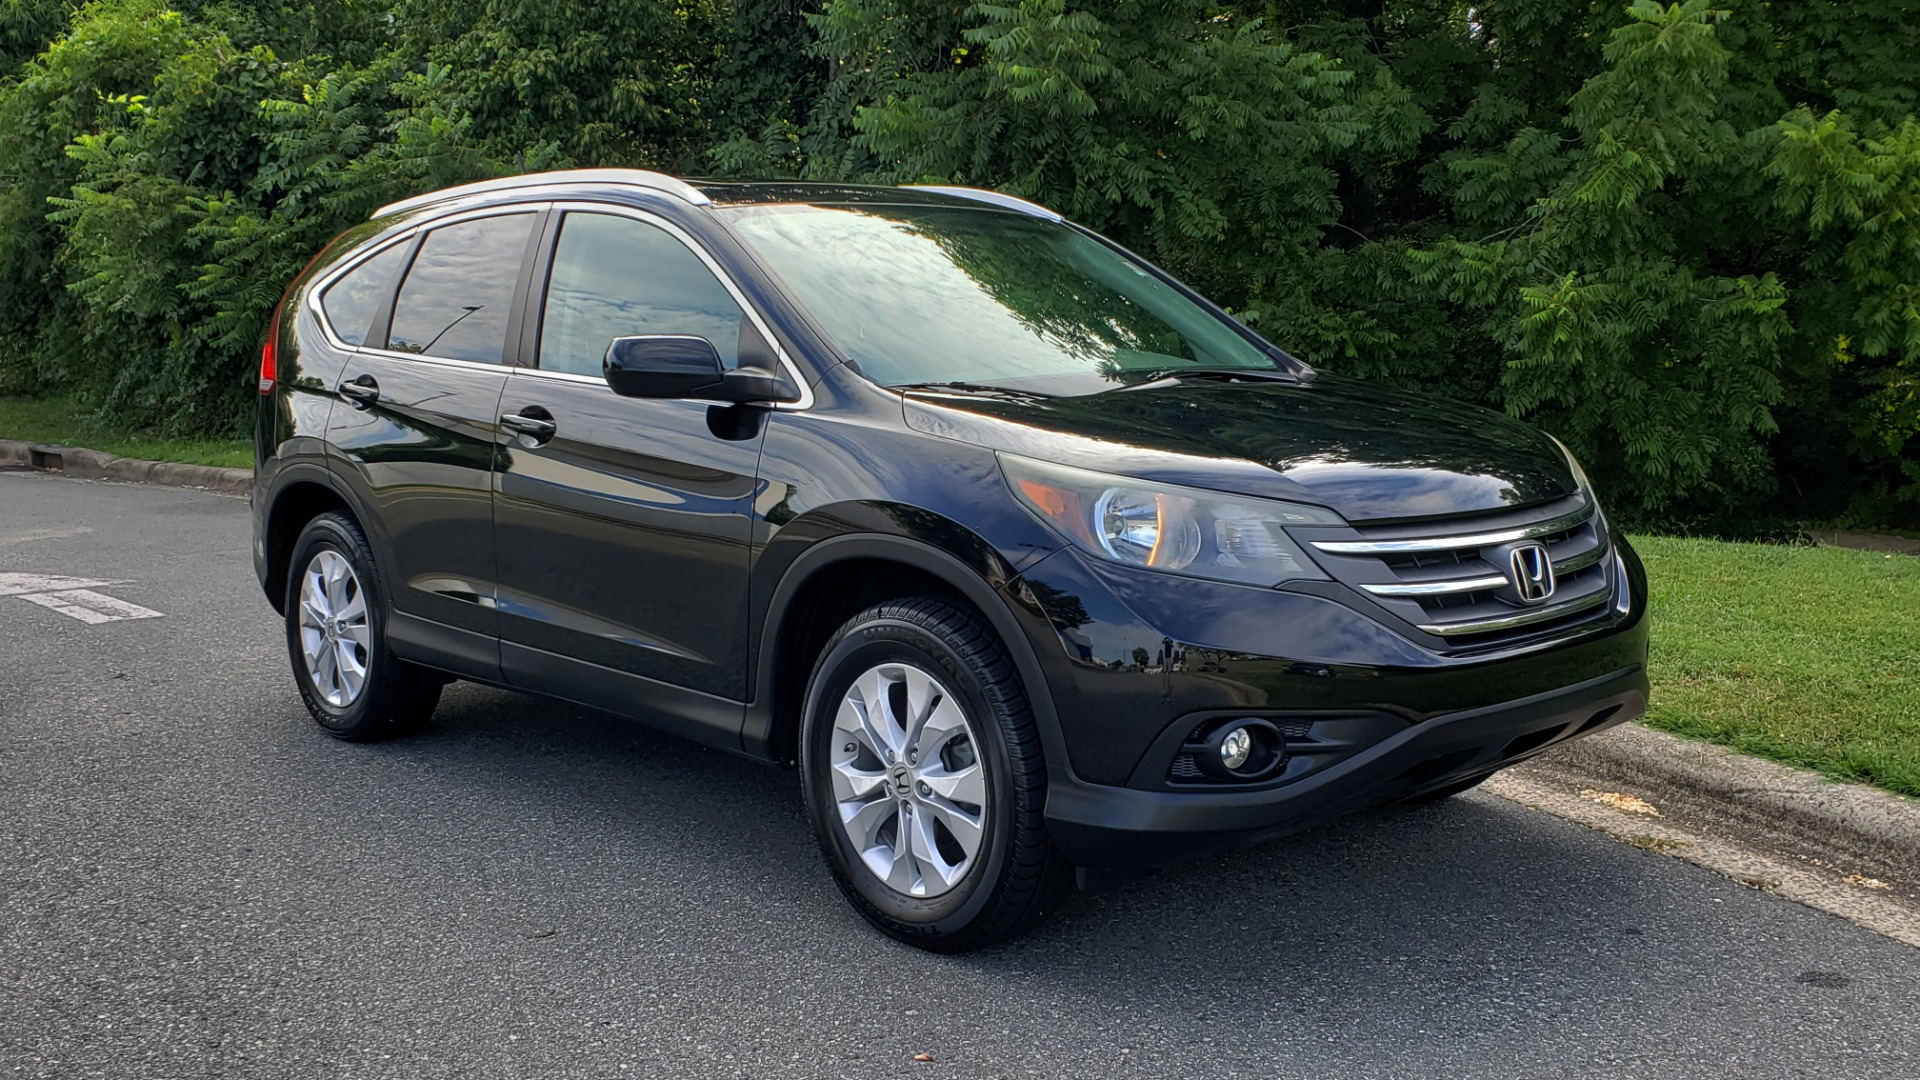 Used 2012 Honda CR-V EX-L / AWD / 5DR / SUNROOF / HEATED SEATS / REARVIEW for sale Sold at Formula Imports in Charlotte NC 28227 4